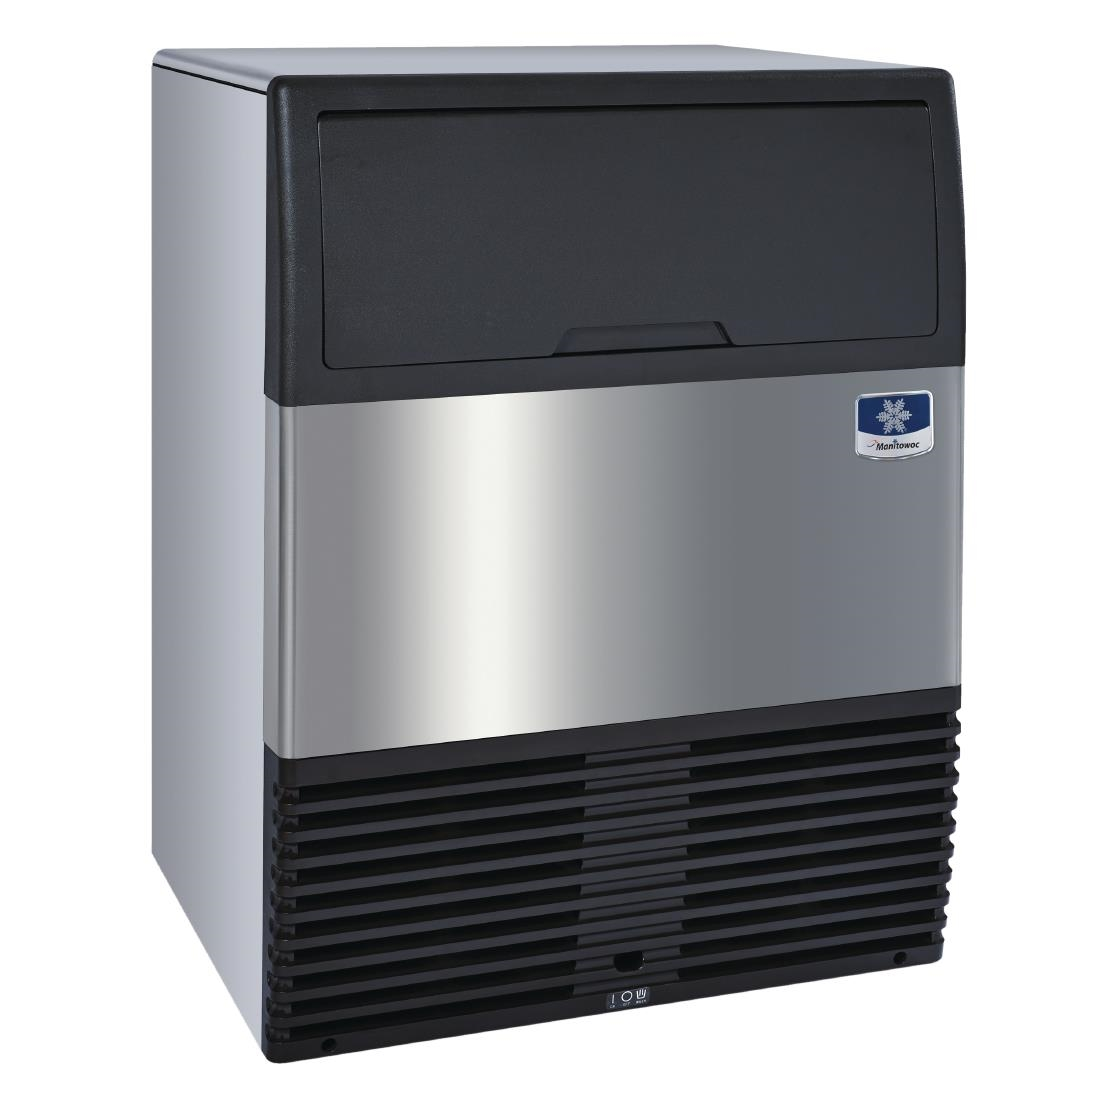 Image of Manitowoc Sotto Integral Undercounter Air-cooled Ice Maker 76kg/24hr UGP080A